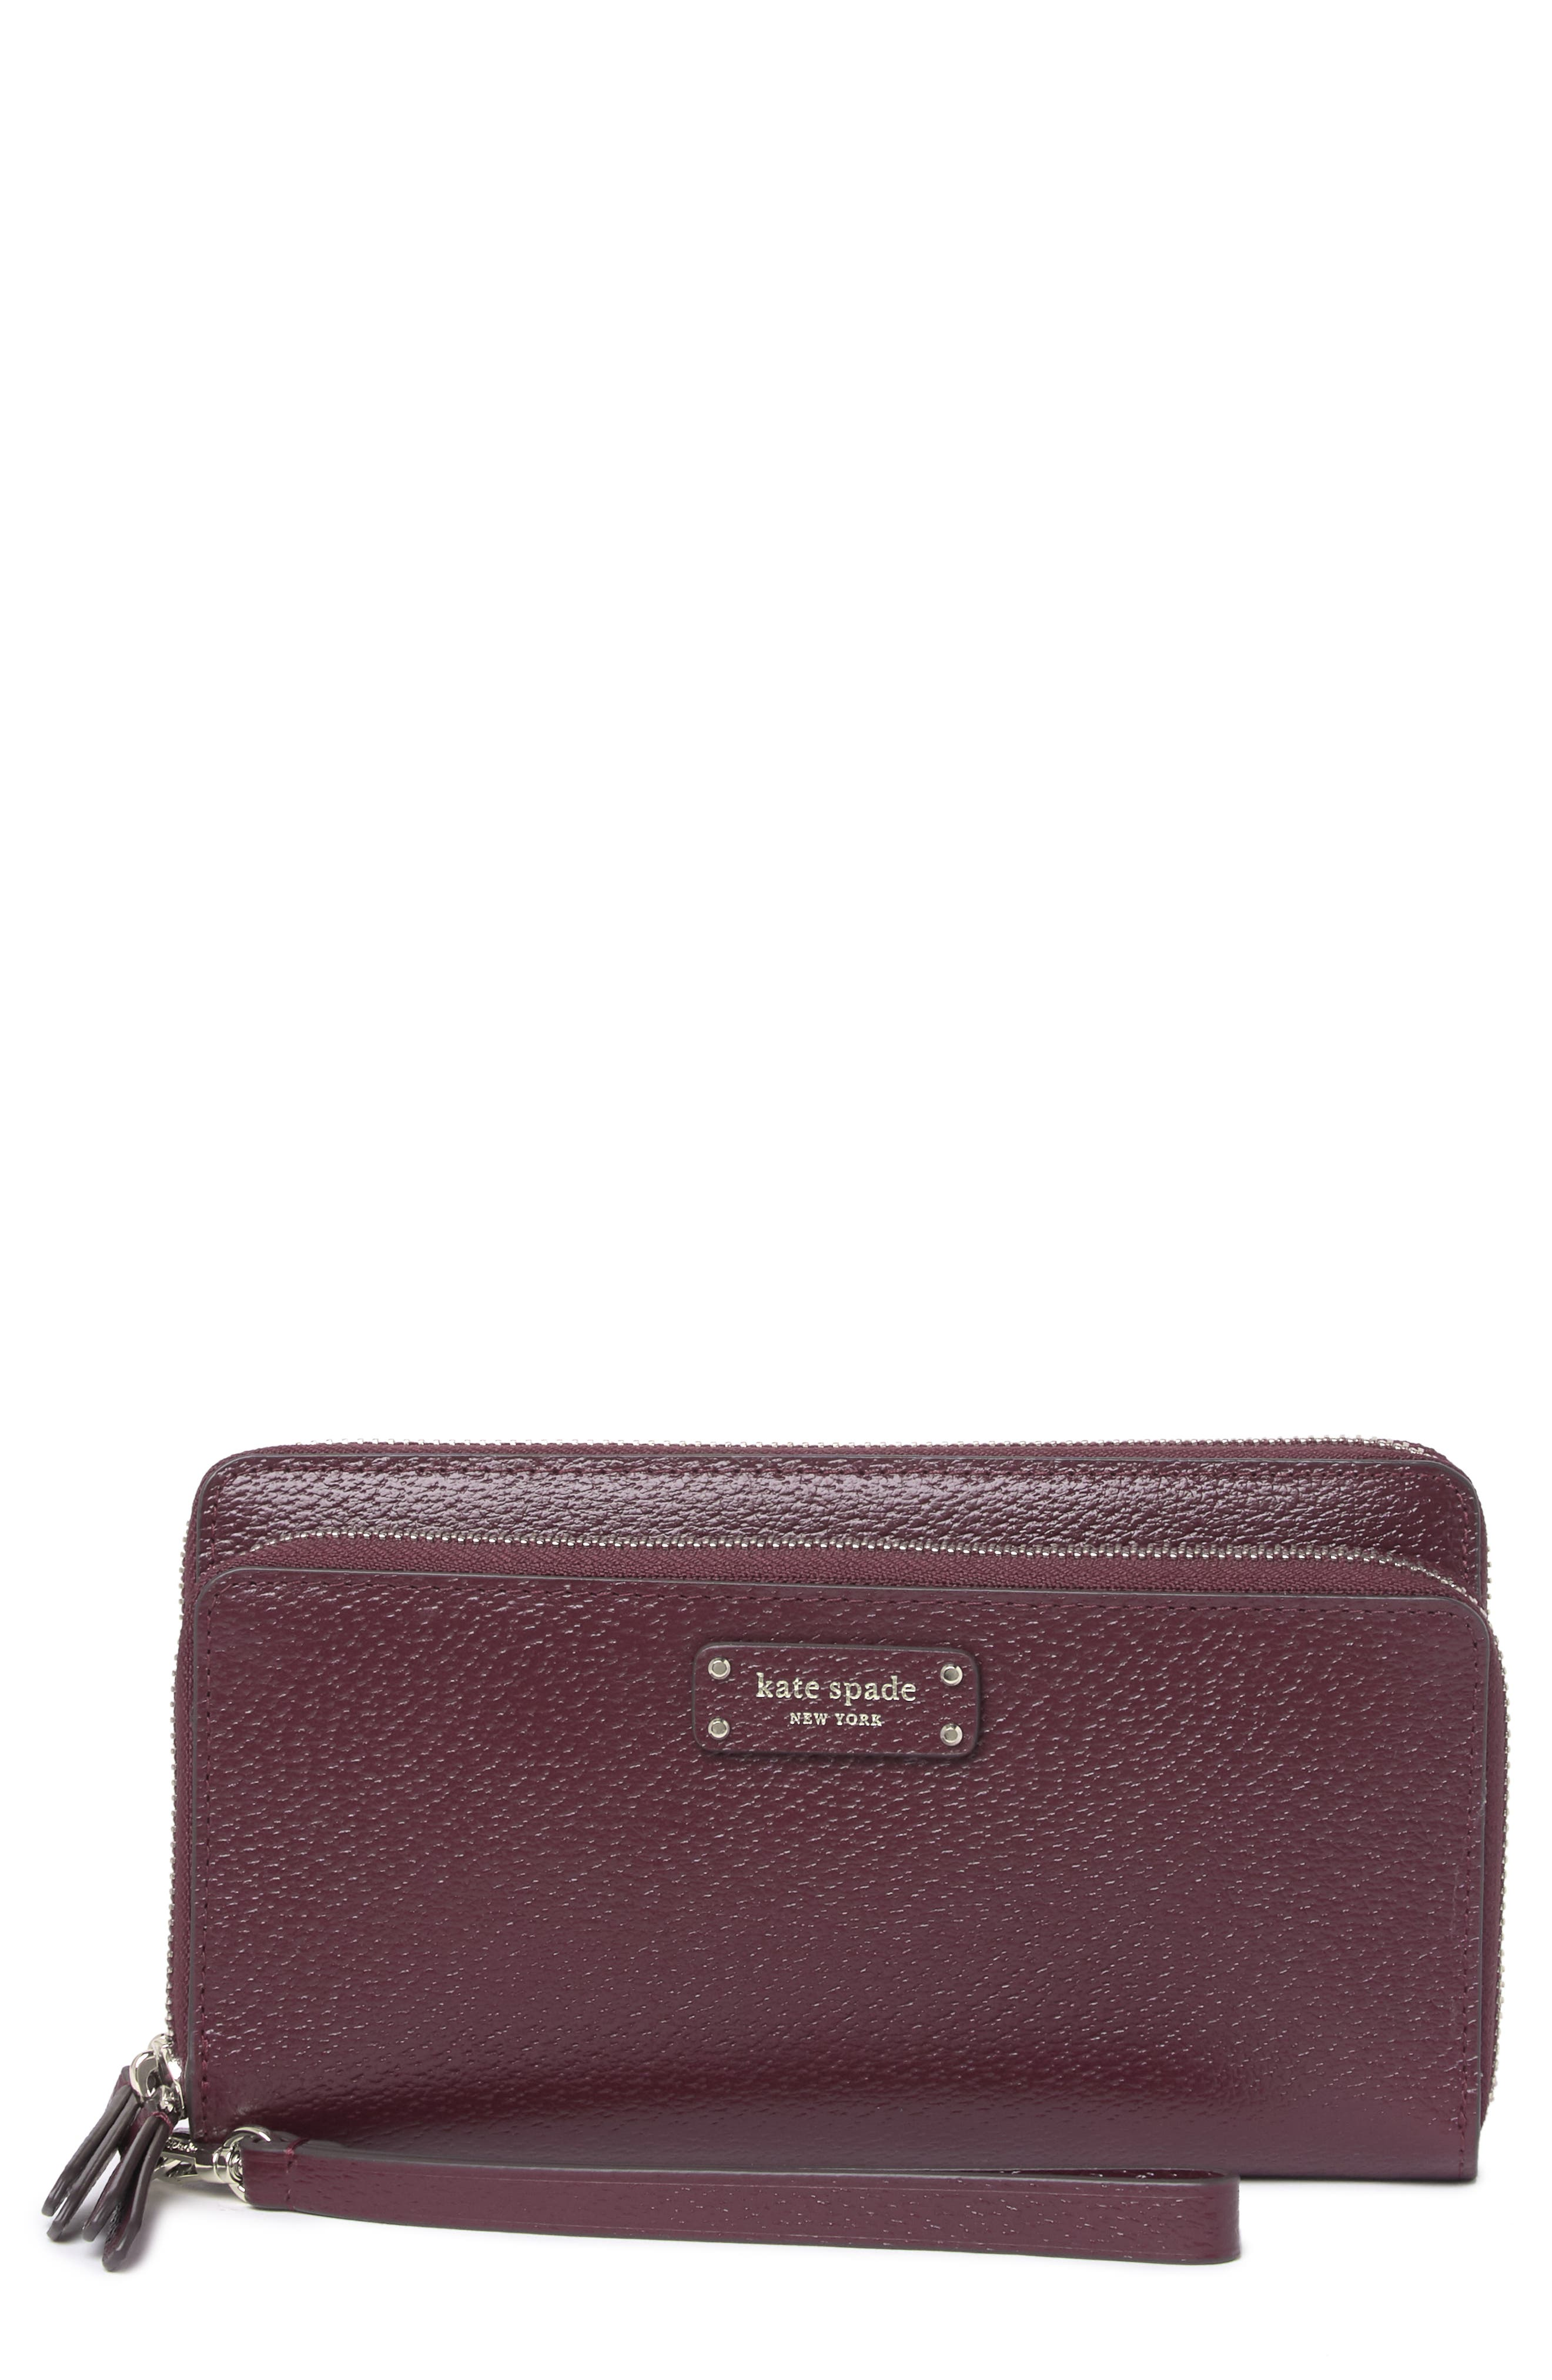 Image of kate spade new york leather jeanne large carryall wristlet wallet